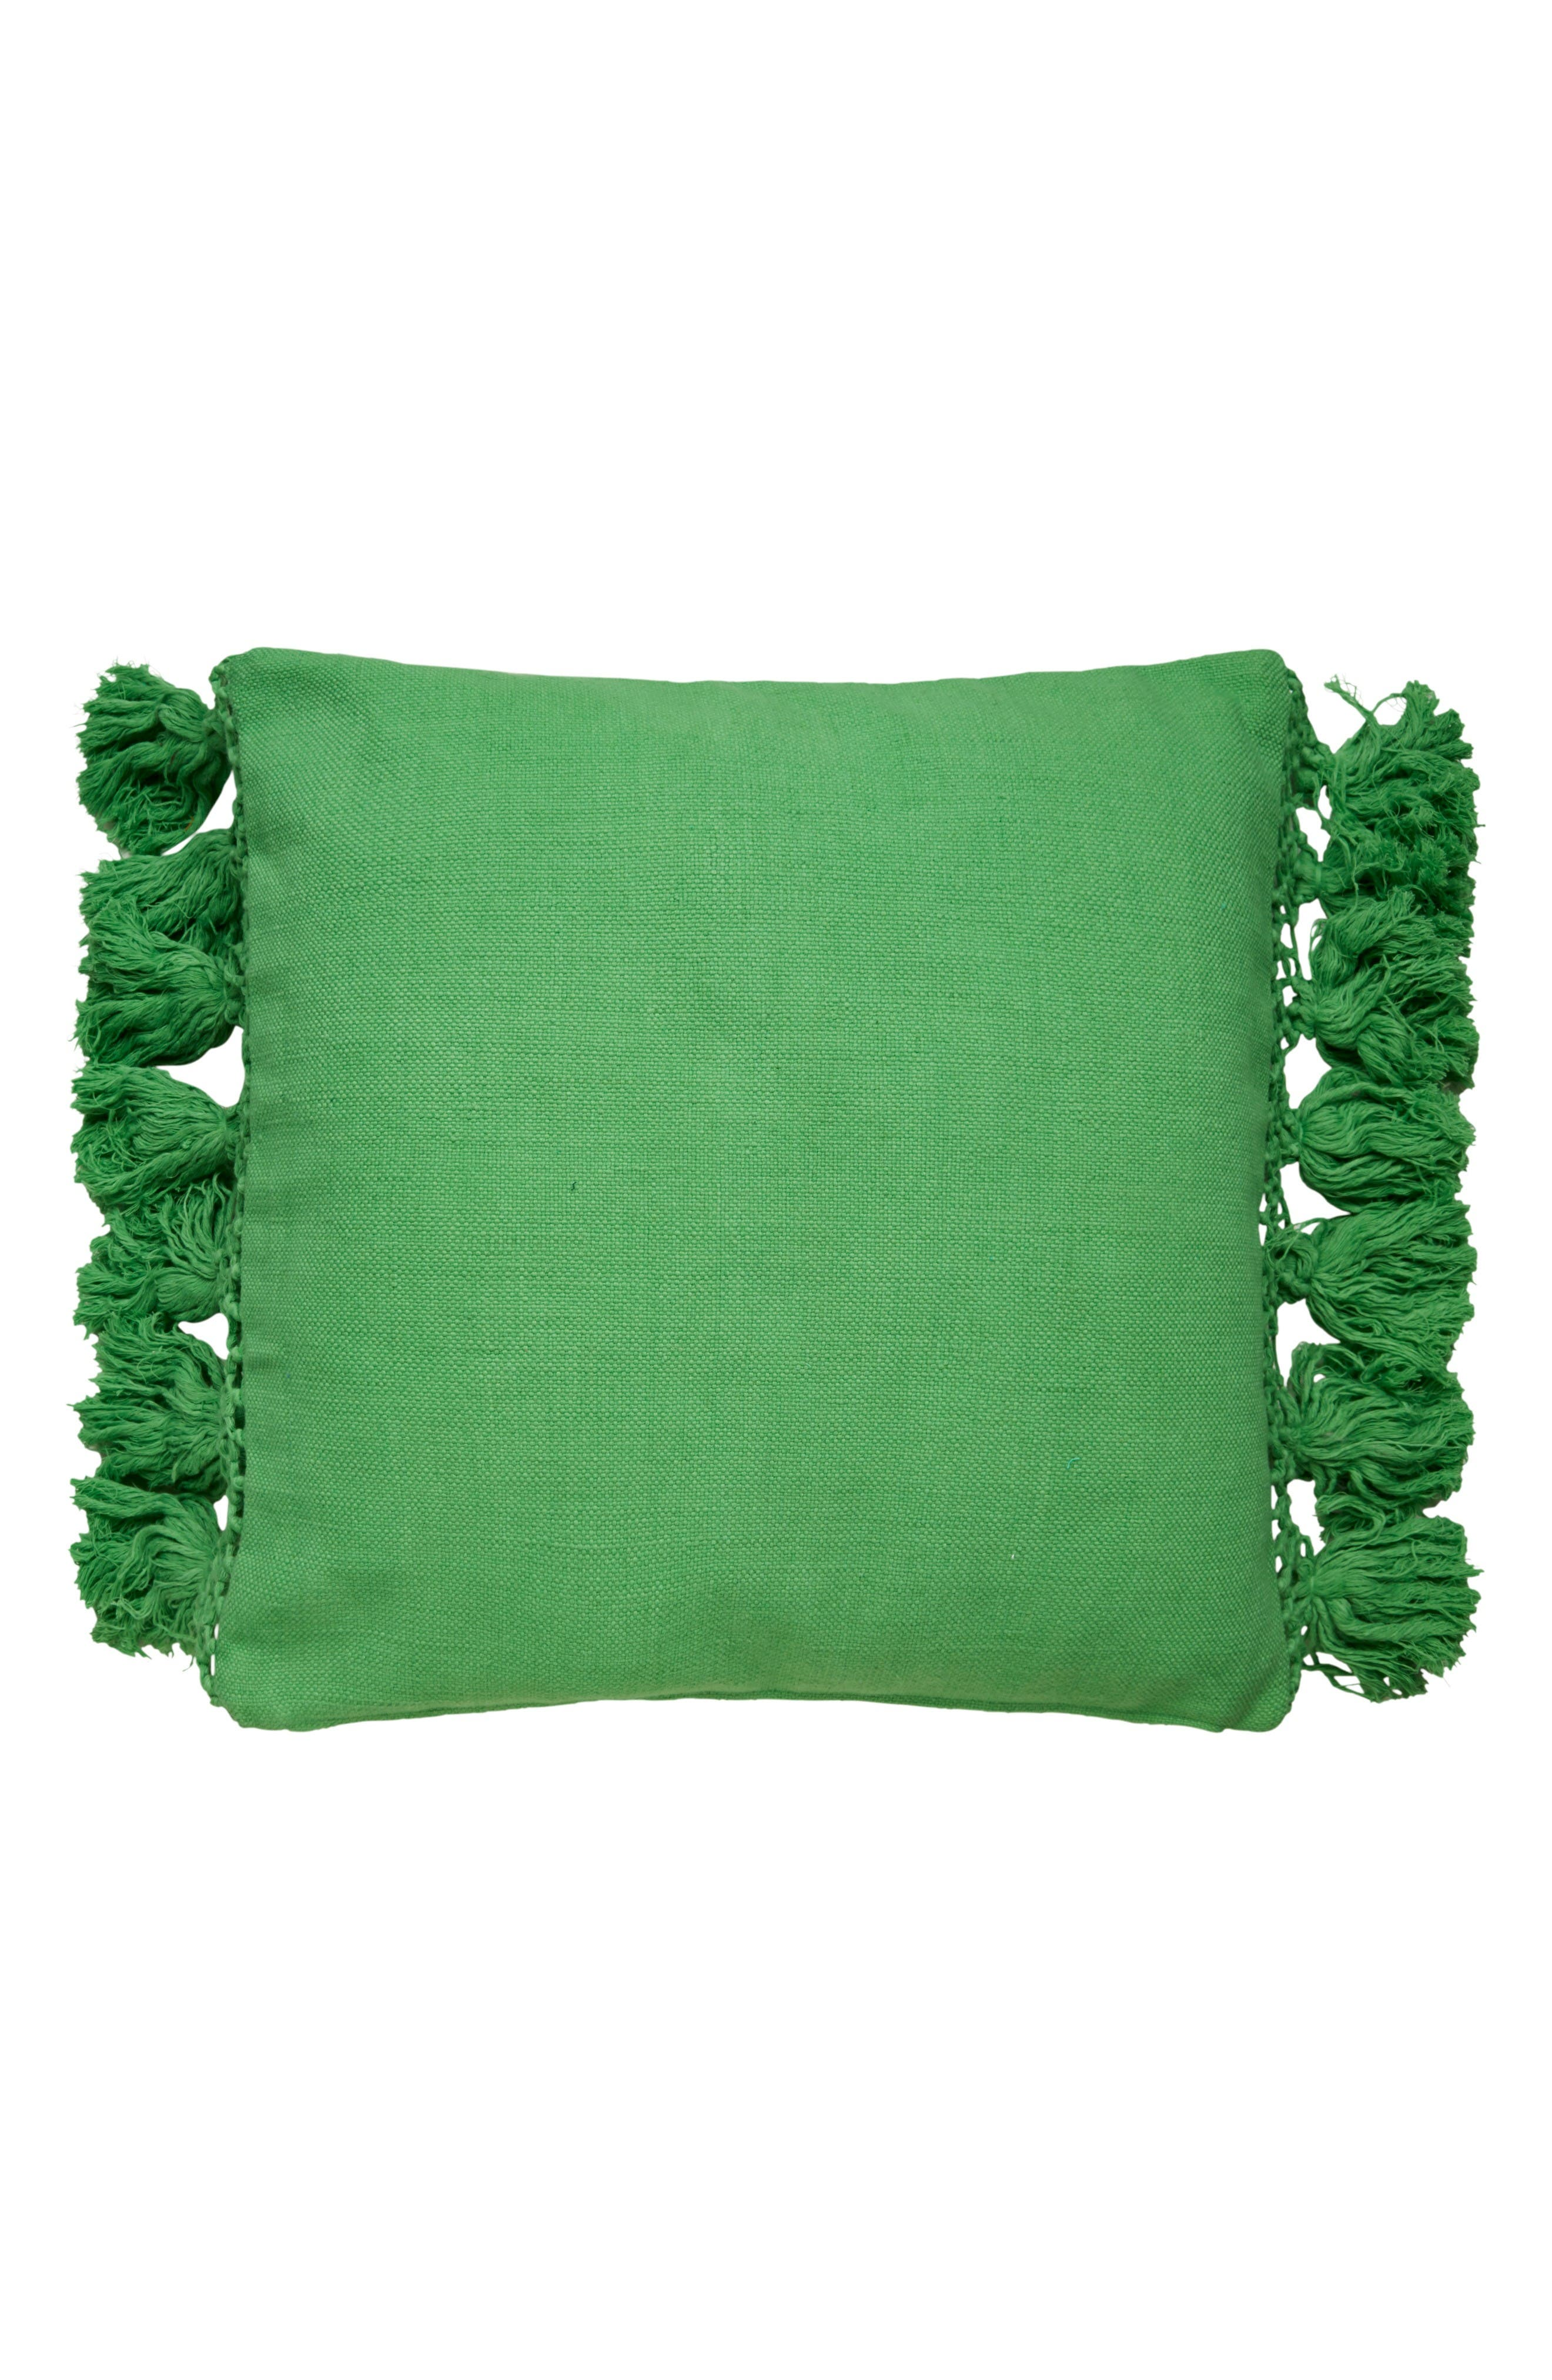 Main Image - kate spade new york tassel accent pillow